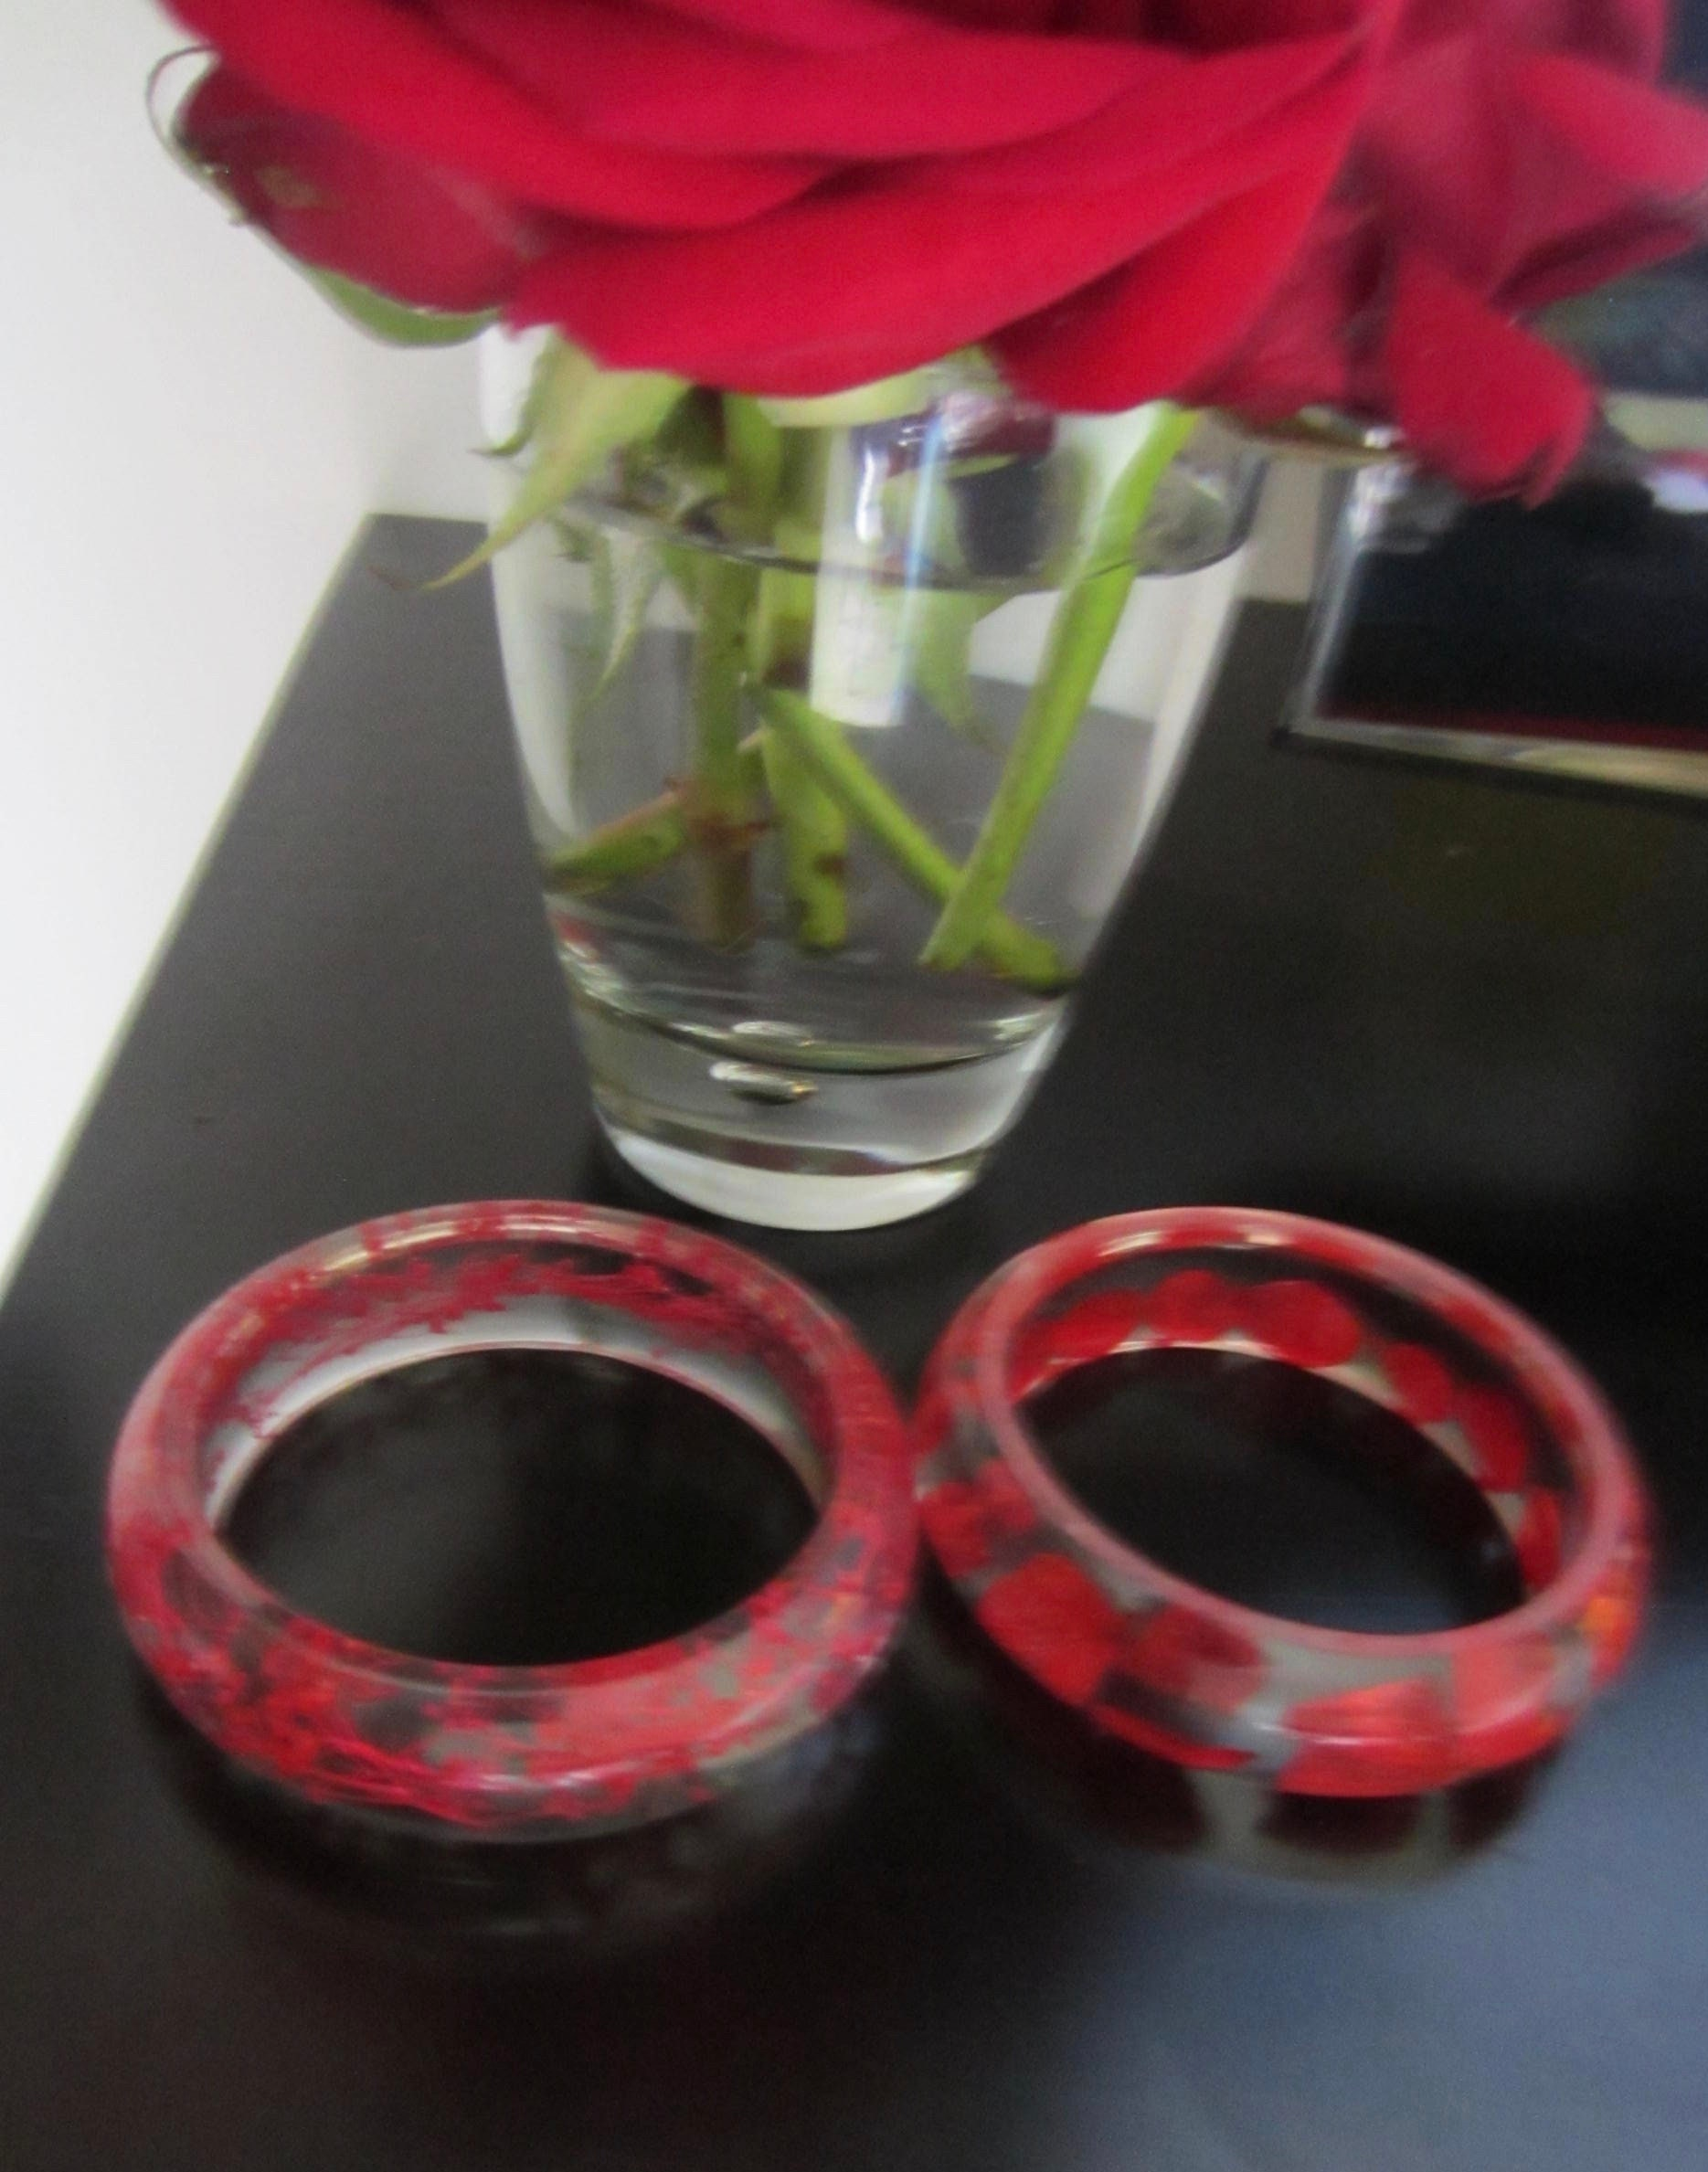 Pair Of Clear Lucite Bangles With Embedded Red Flowers Pretty